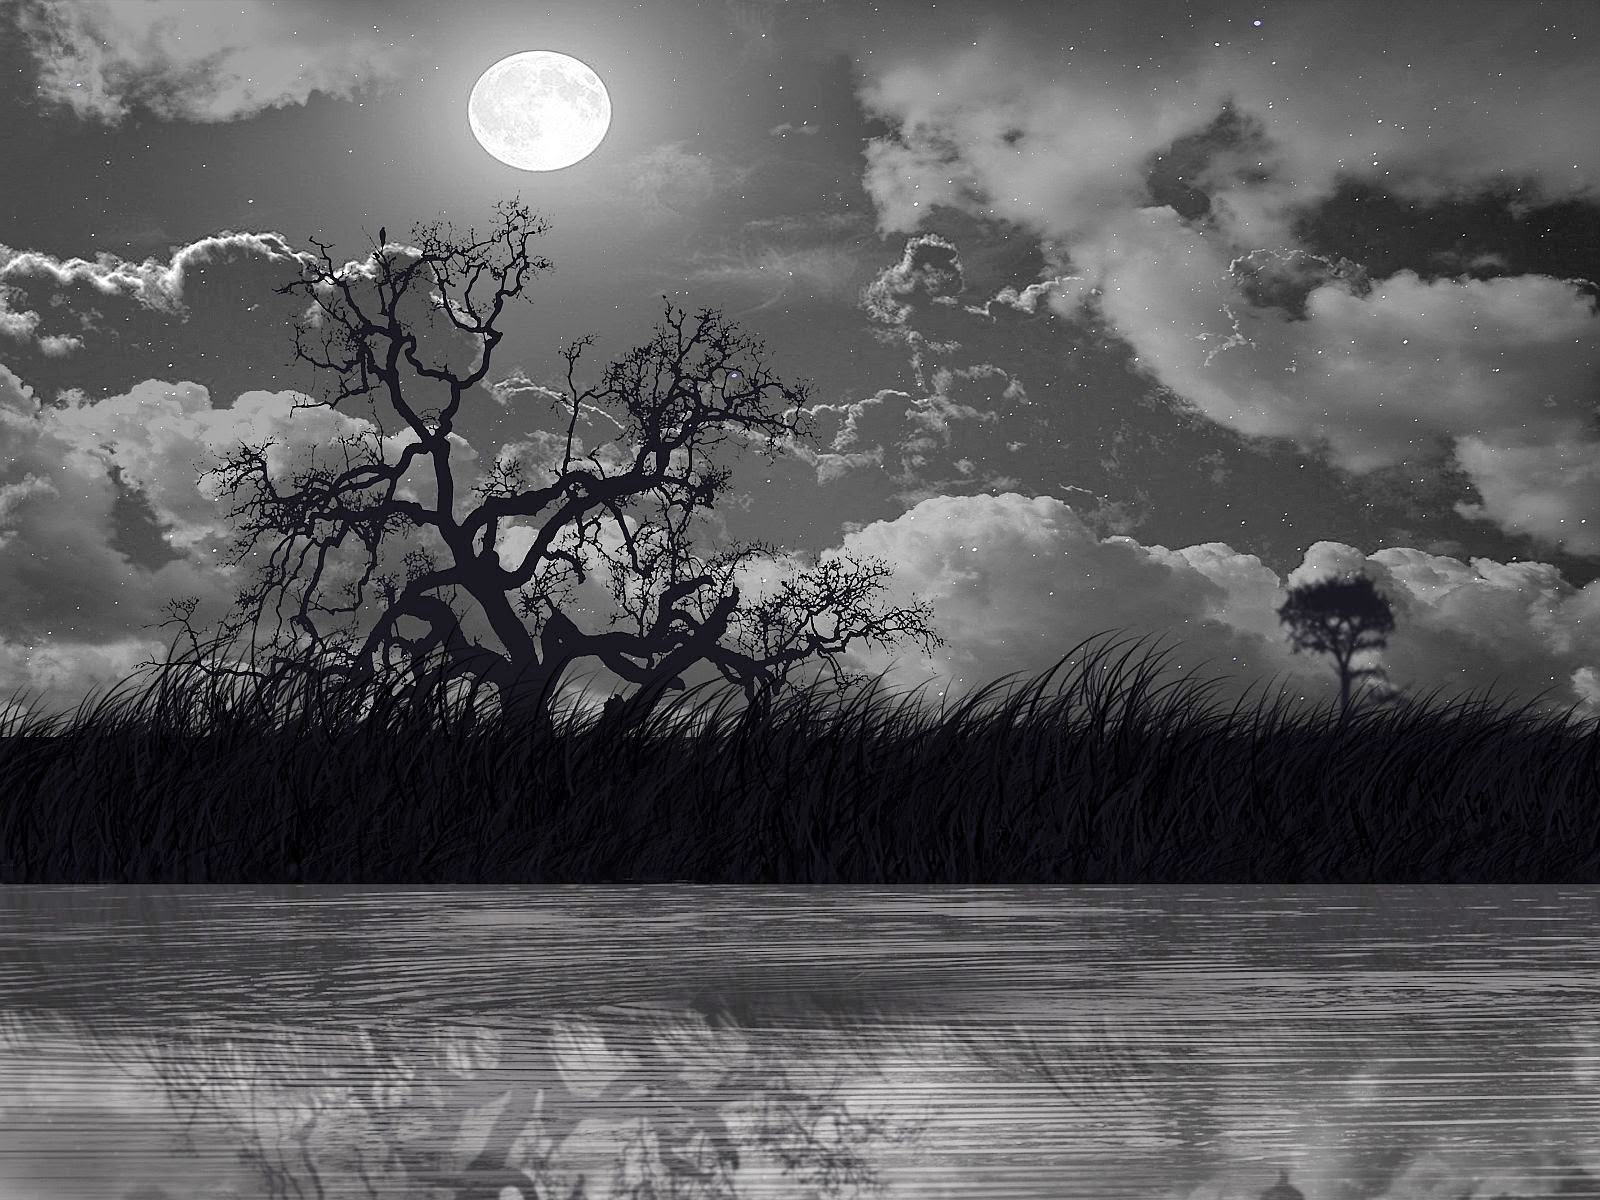 Black-theme-night-with-white-full-moon-wallpaper.jpg